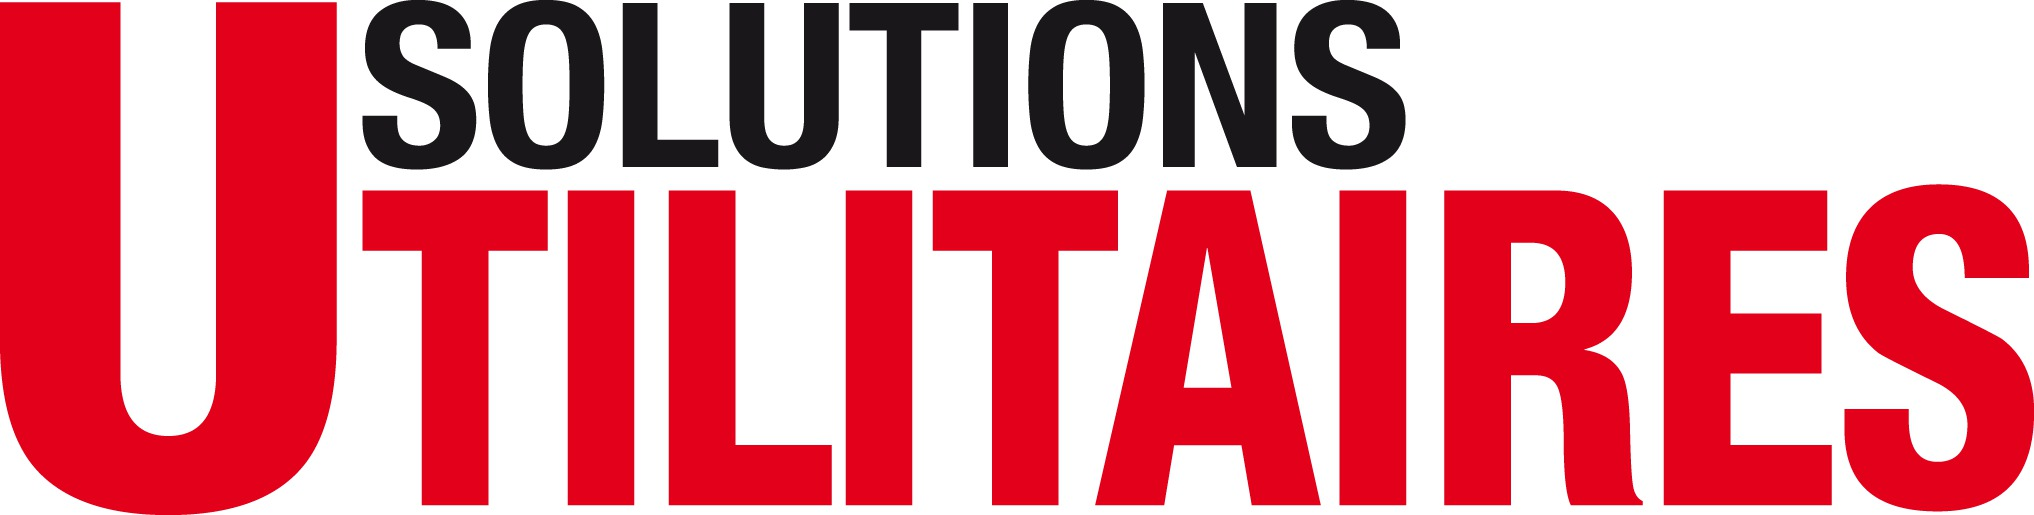 solutions utilitaires logo